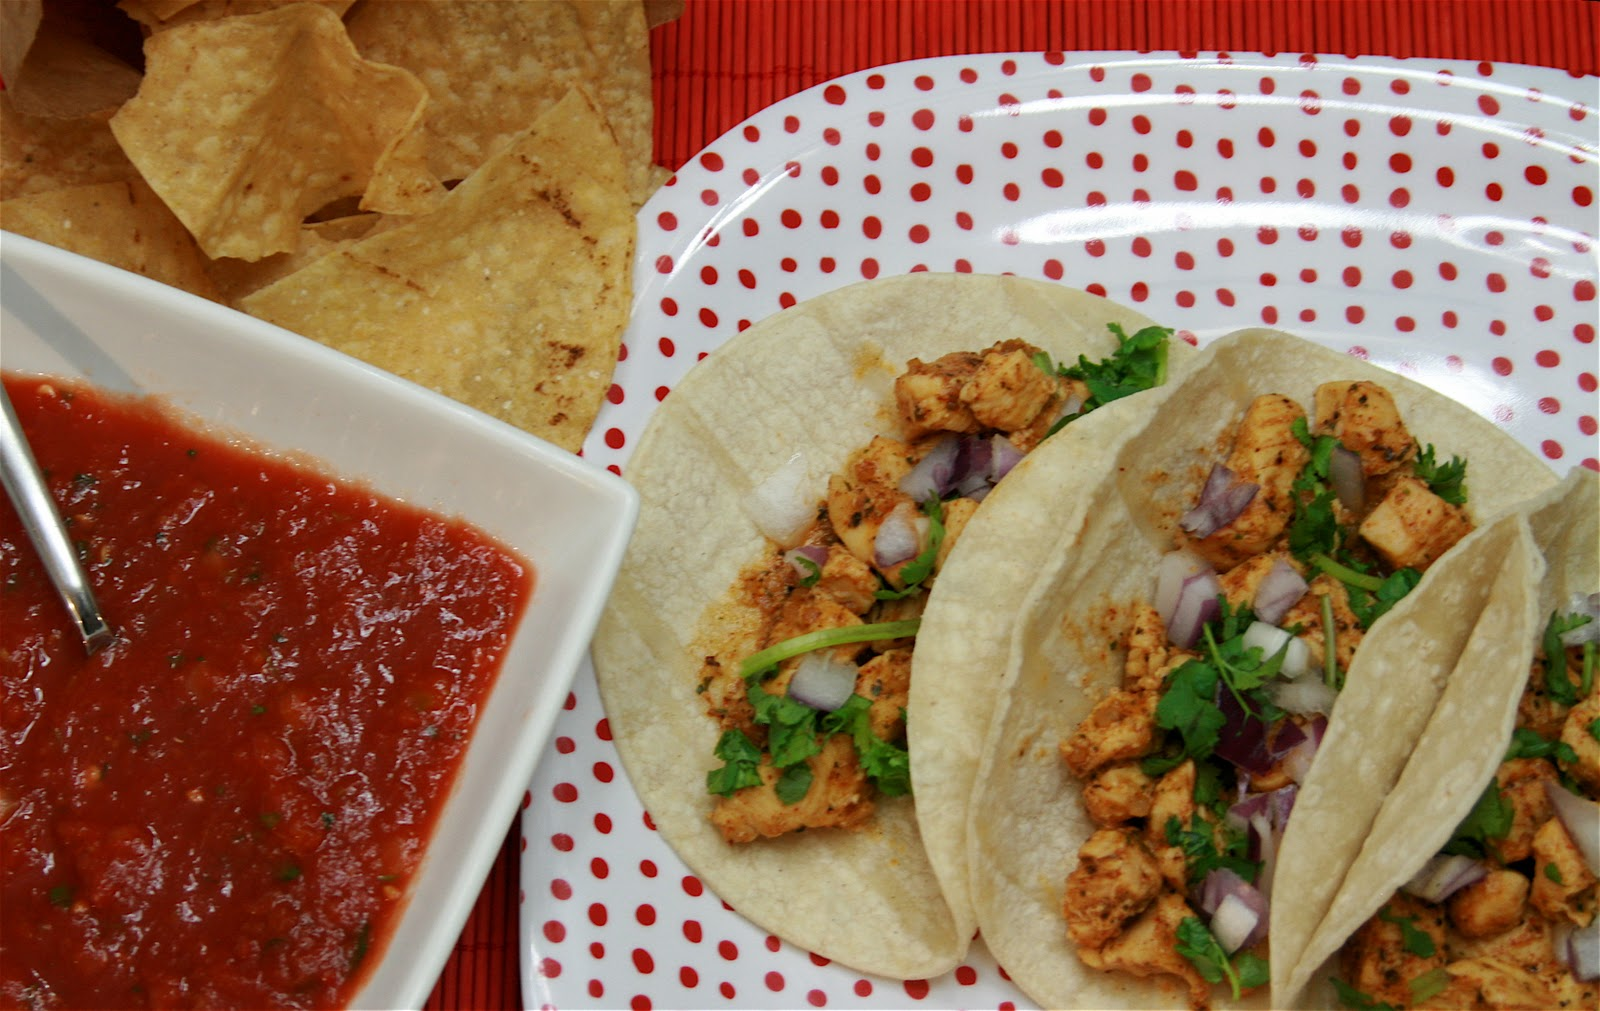 Simple Chicken Taco Recipe http://cookbakeanddecorate.blogspot.com ...